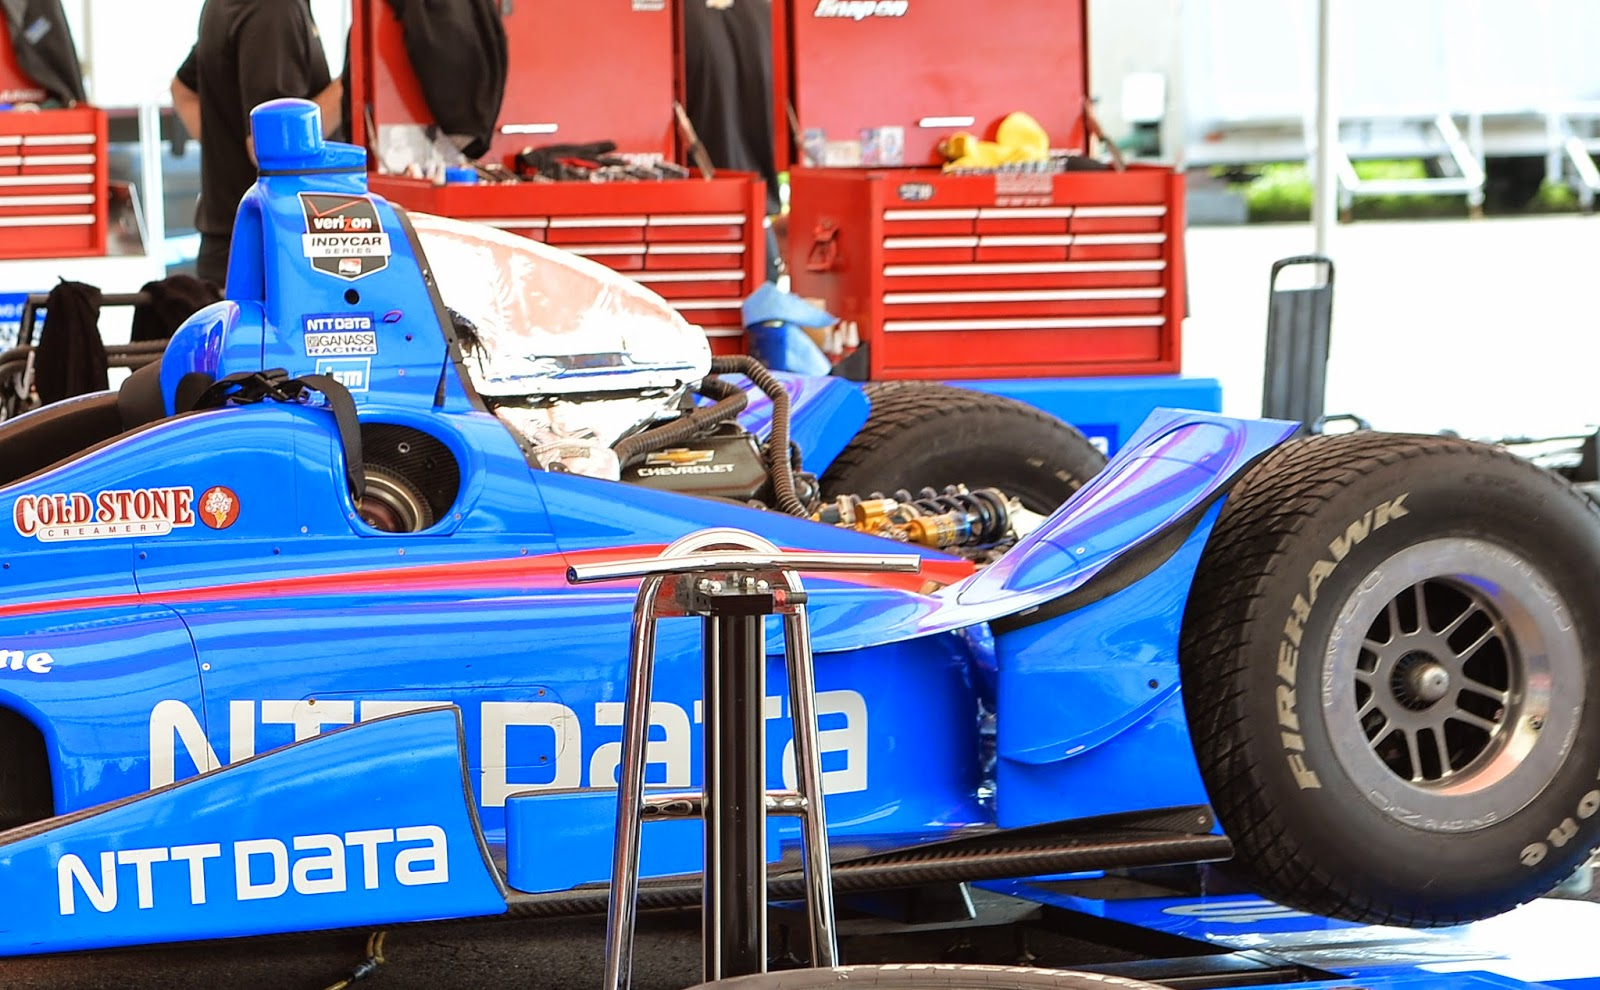 Tony Kanaan's Chevrolet in the paddock getting serviced.